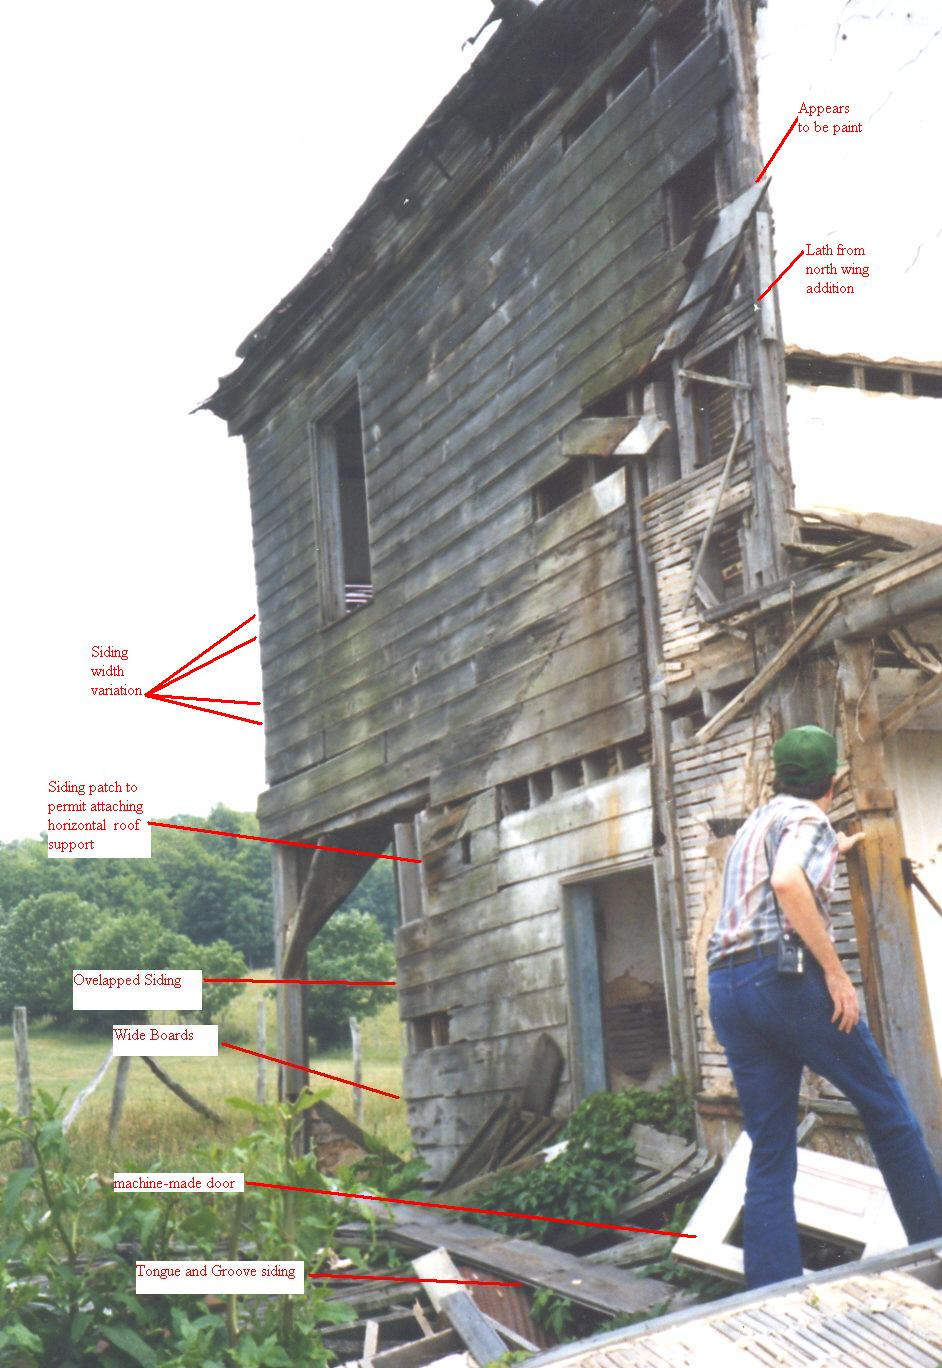 Rear of house on Michael Korns, Sr. farm, Somerset County, PA, showing presence of an addition, and showing several different widths of siding